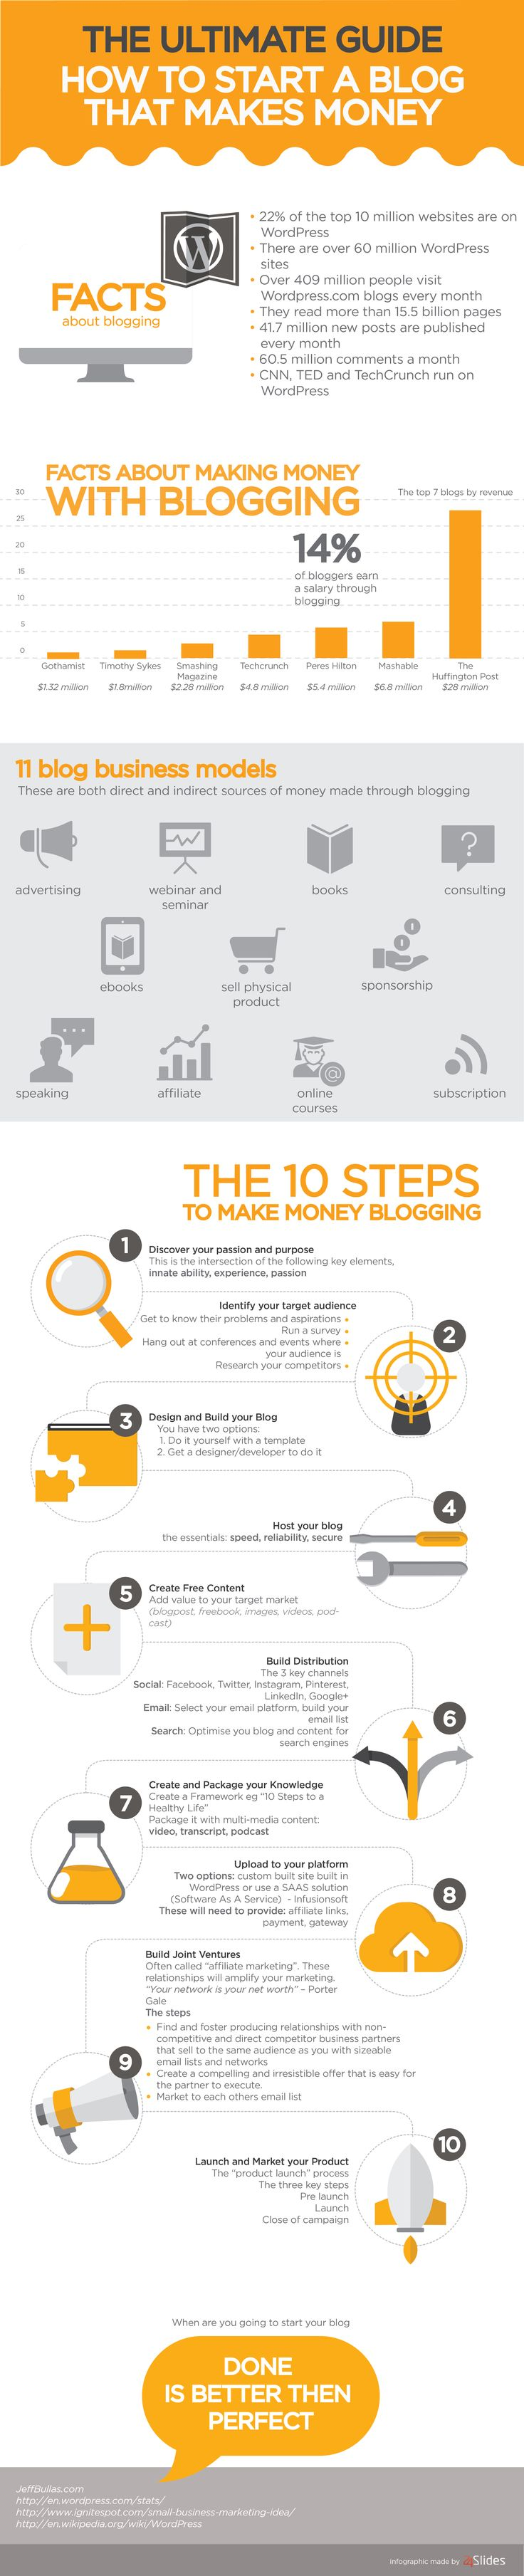 10 Key Steps on How To Start a Blog That Makes Money using multiple monetization options. Bonus #11 - https://trafeze.com